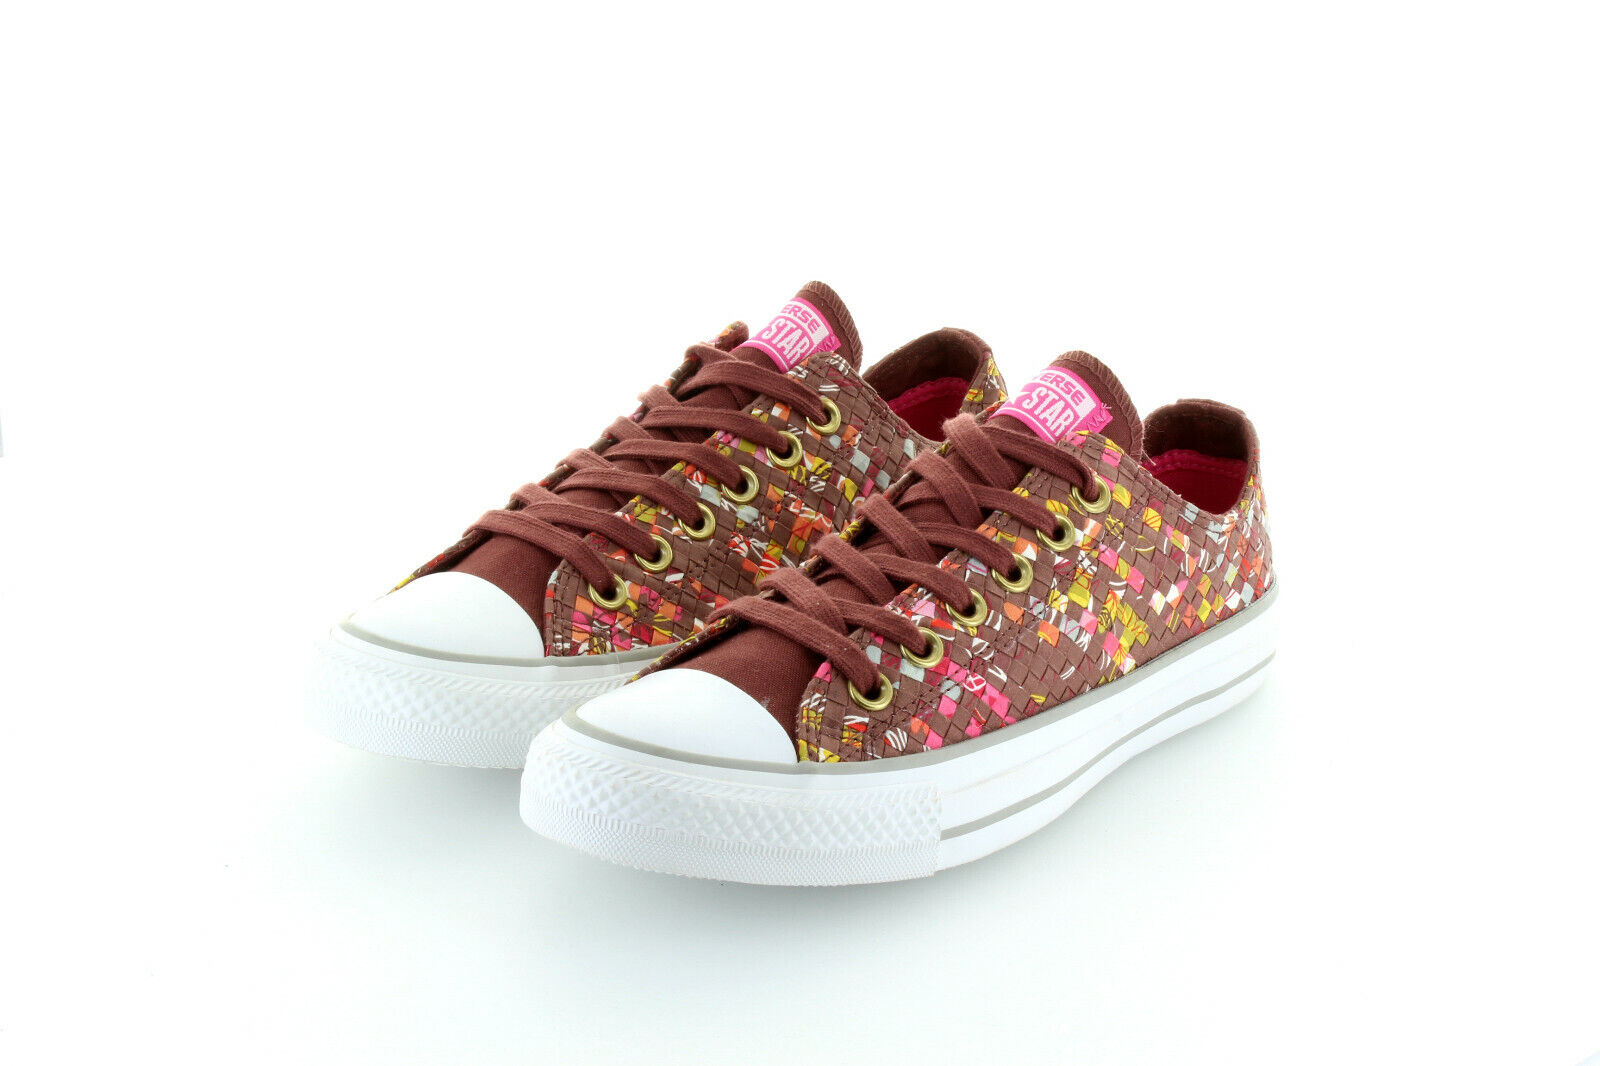 Converse All Star Chuck Taylor Ox Hot Chocolate Multi Woven Gr. 37,5   38,5